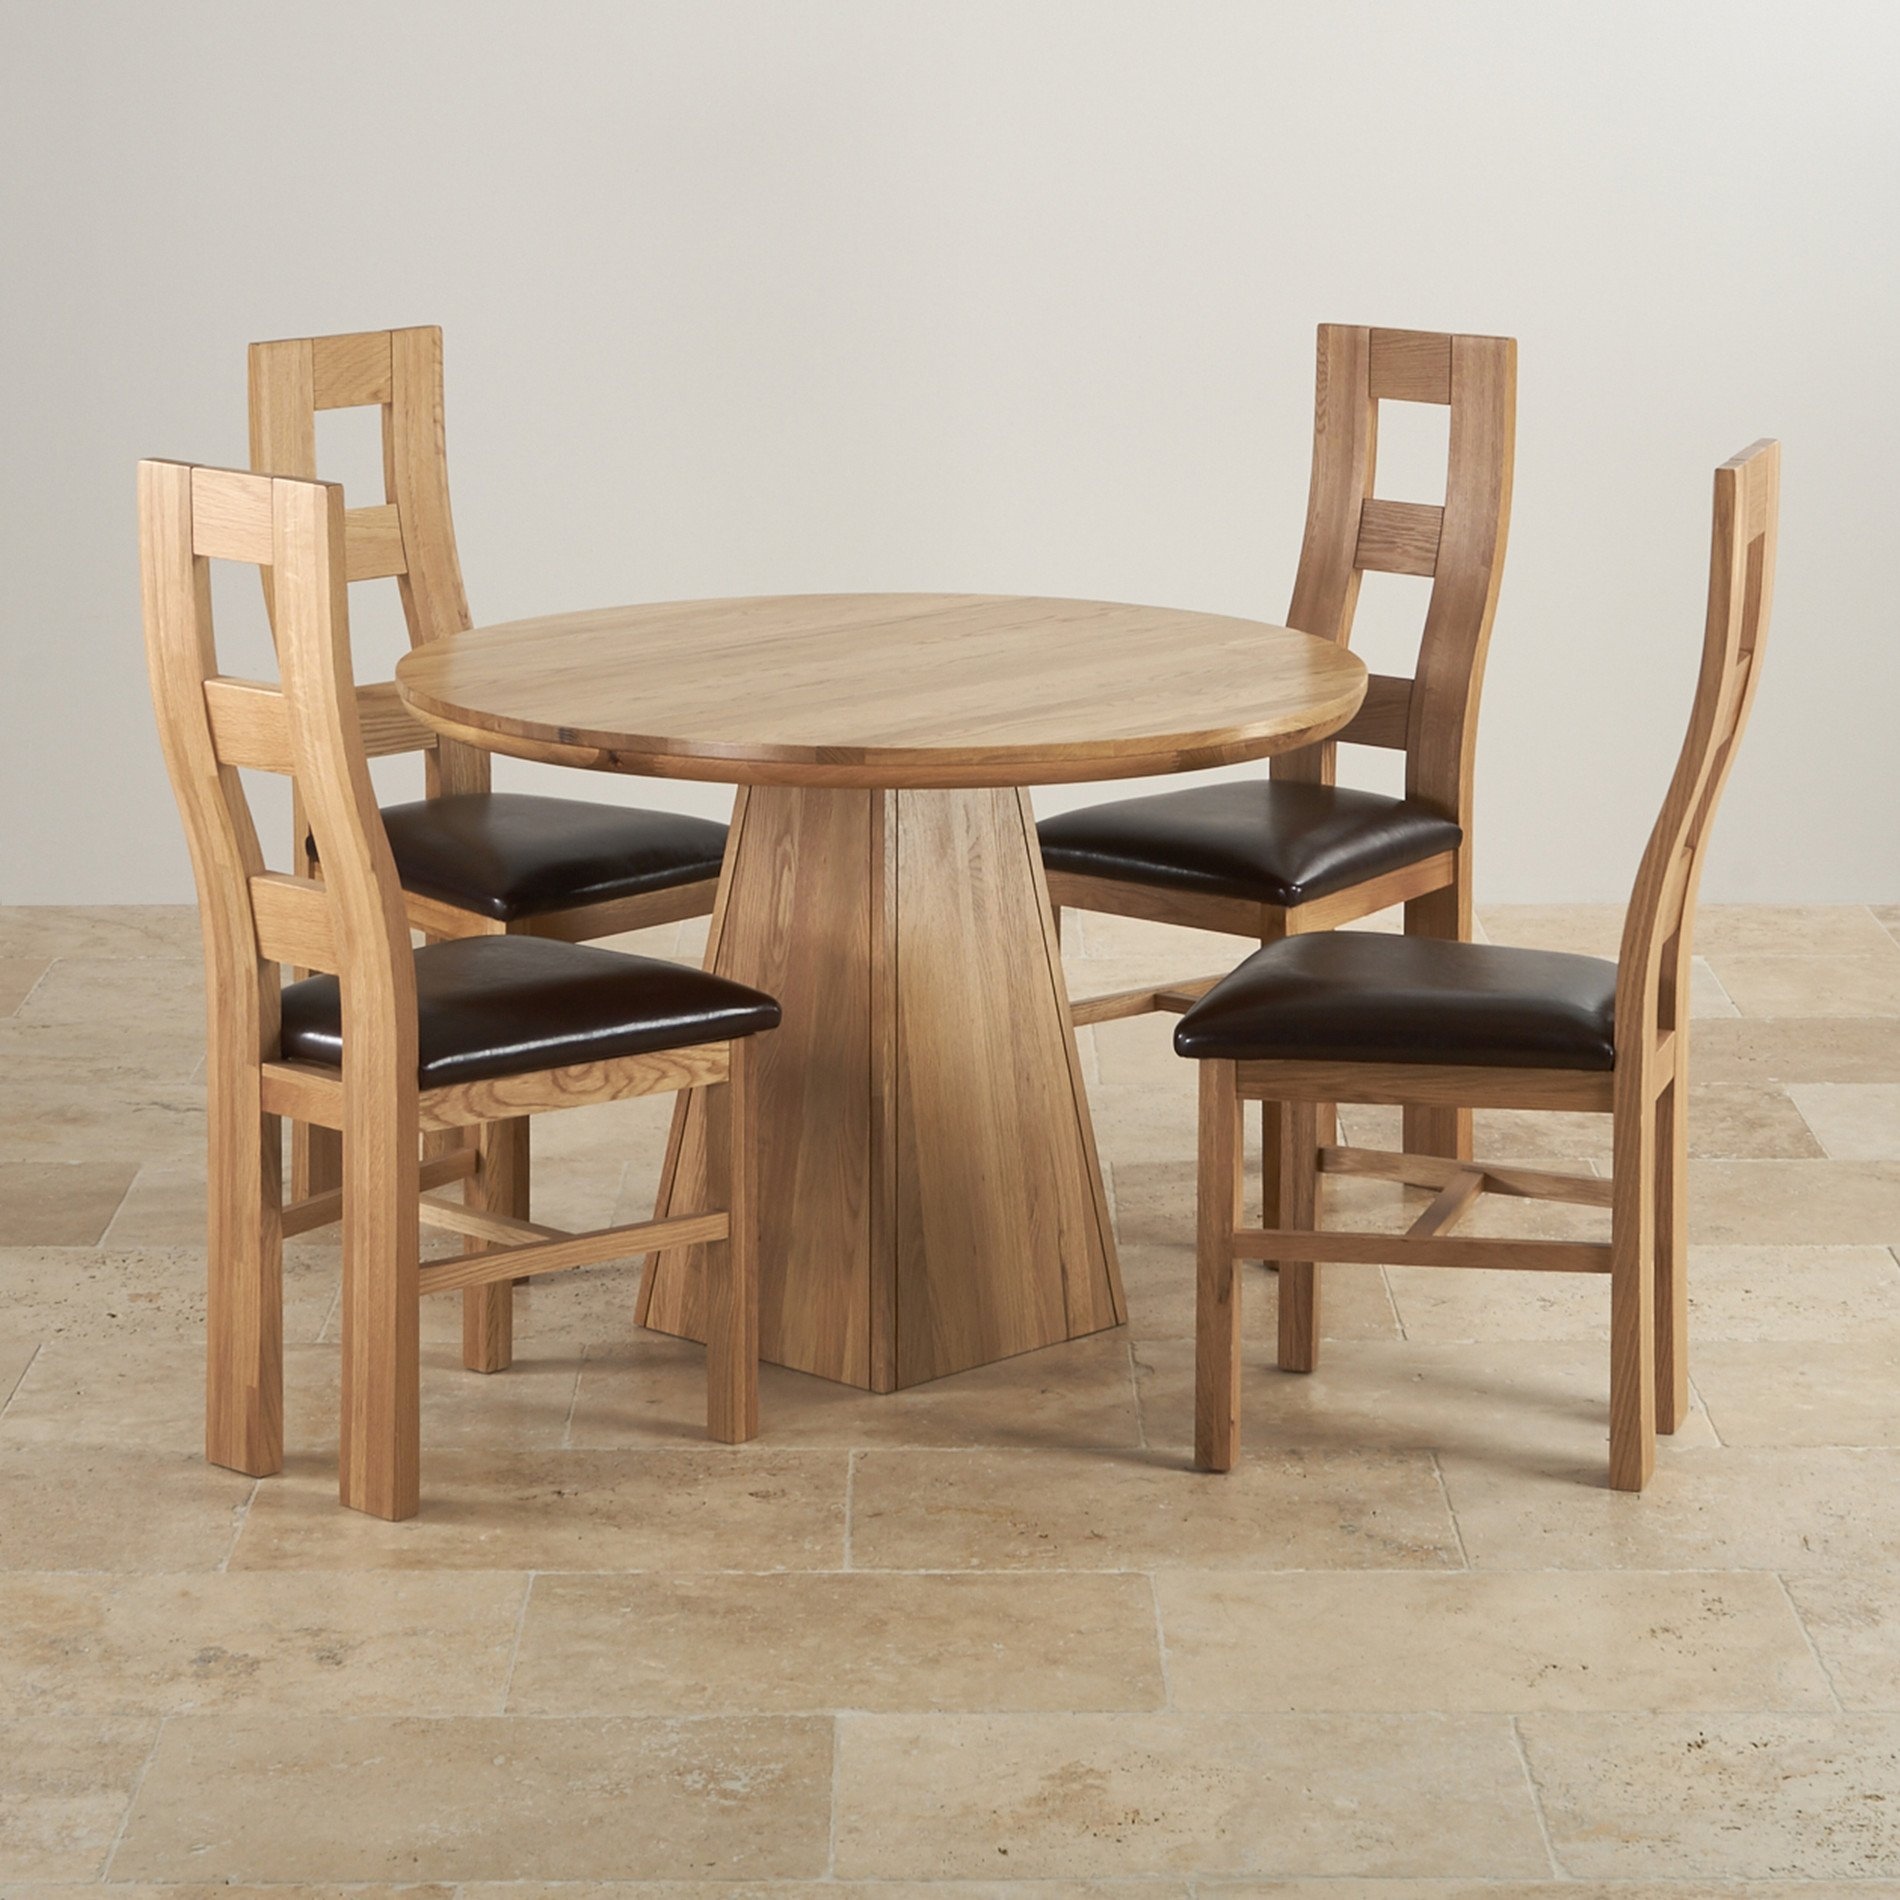 Tremendous Round Oak Kitchen Table And Chairs Home Yard Design Cjindustries Chair Design For Home Cjindustriesco